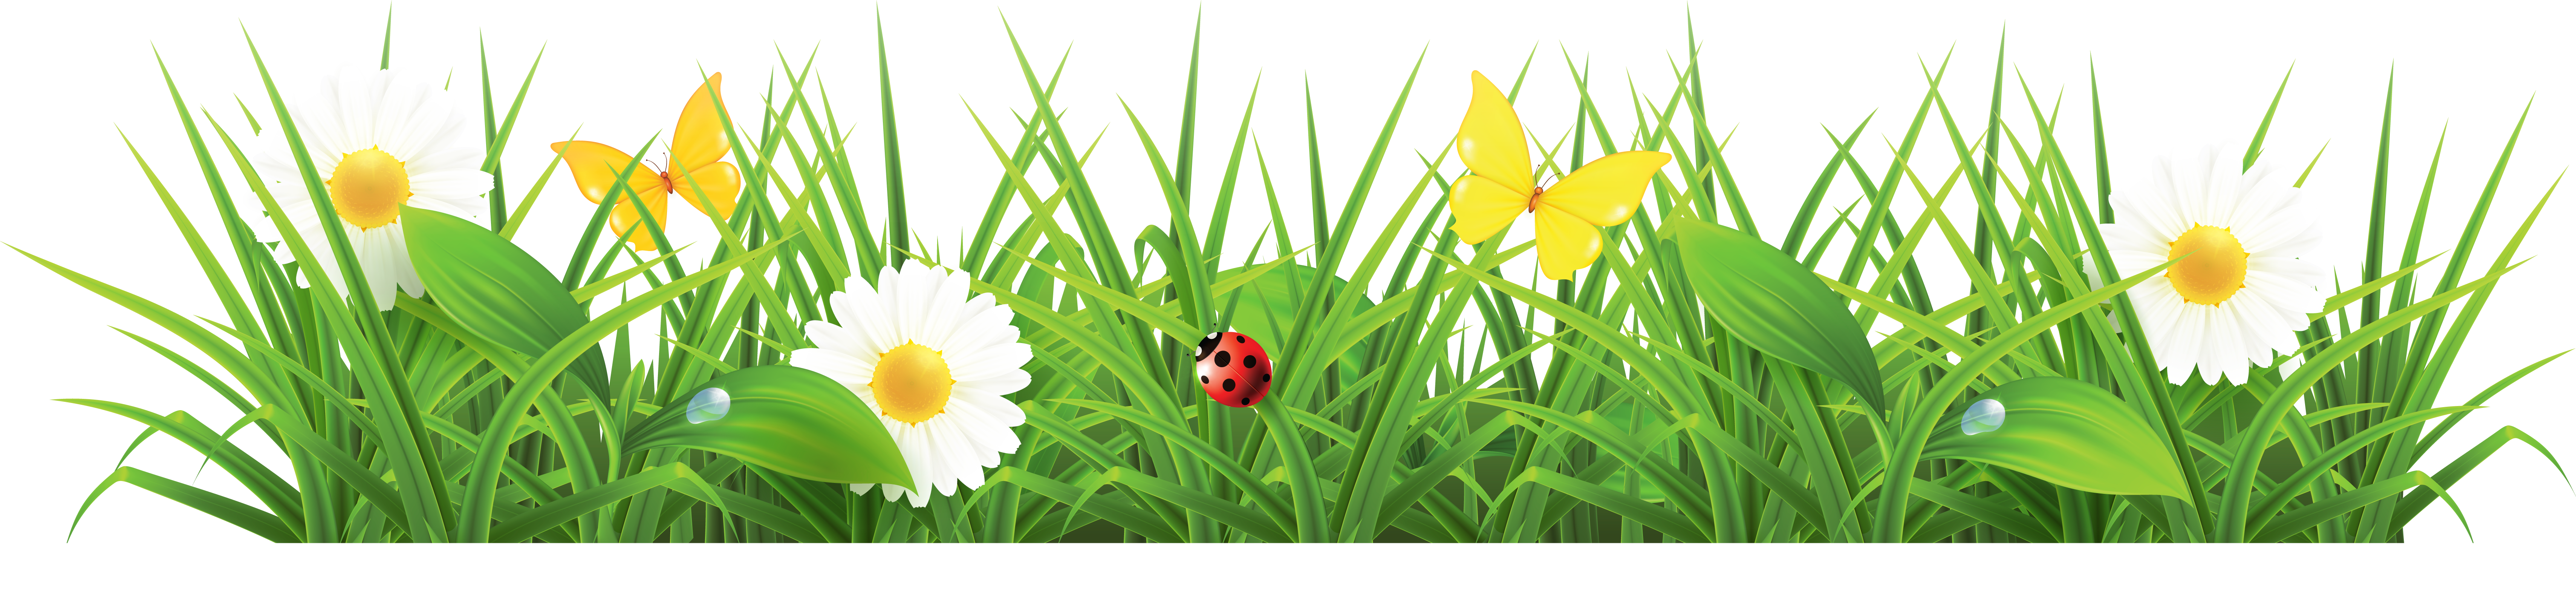 Clipart grass and flowers banner library stock Flowers grass clipart - ClipartFest banner library stock